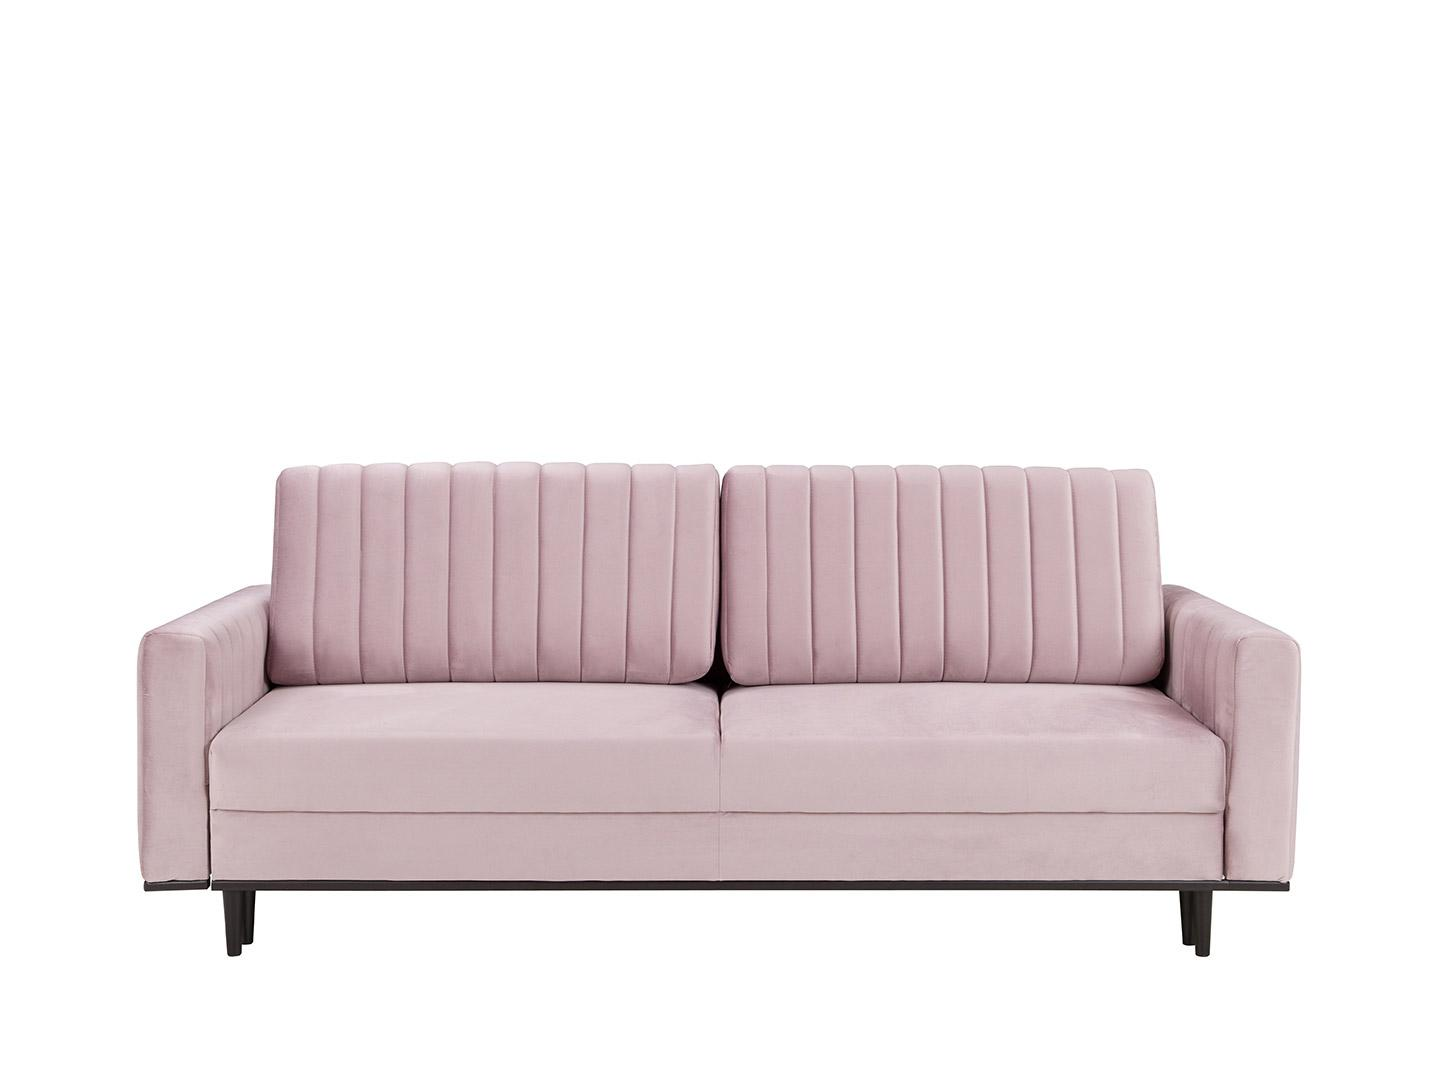 sofa GAW-SO3-AVATELE_LX_3DL--VELVET_62 - Sofy